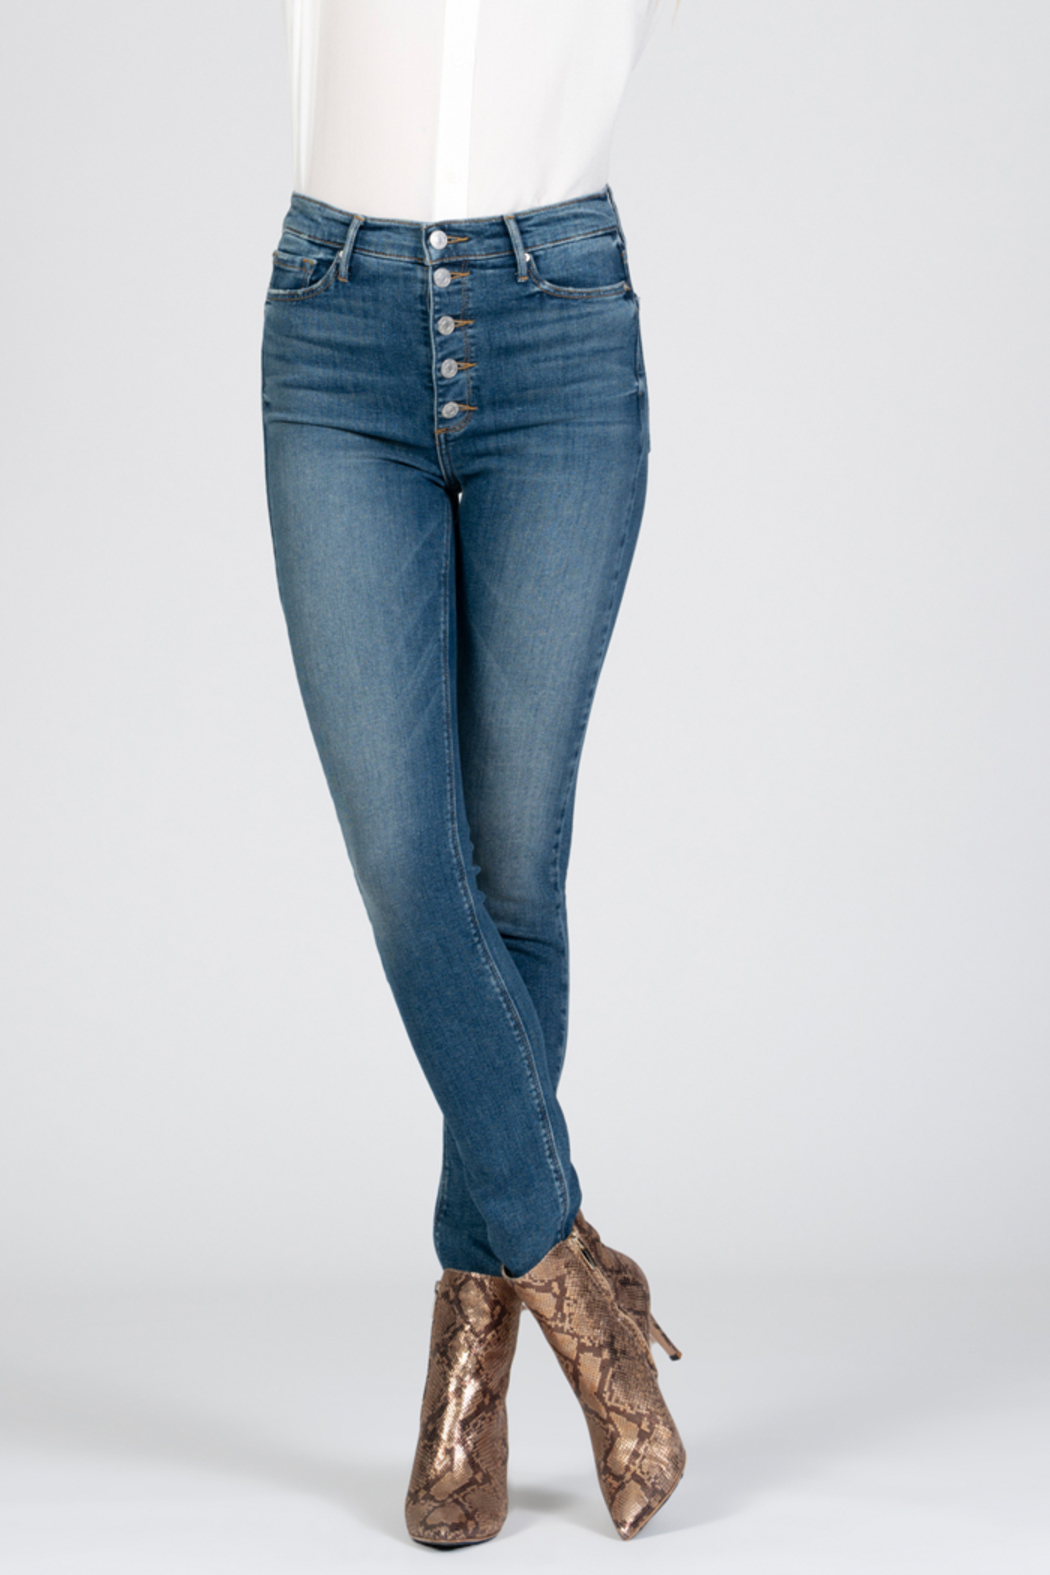 Black Orchid Denim Black Orchid Christie Buttonfly High Rise Skinny Jean - Main Image